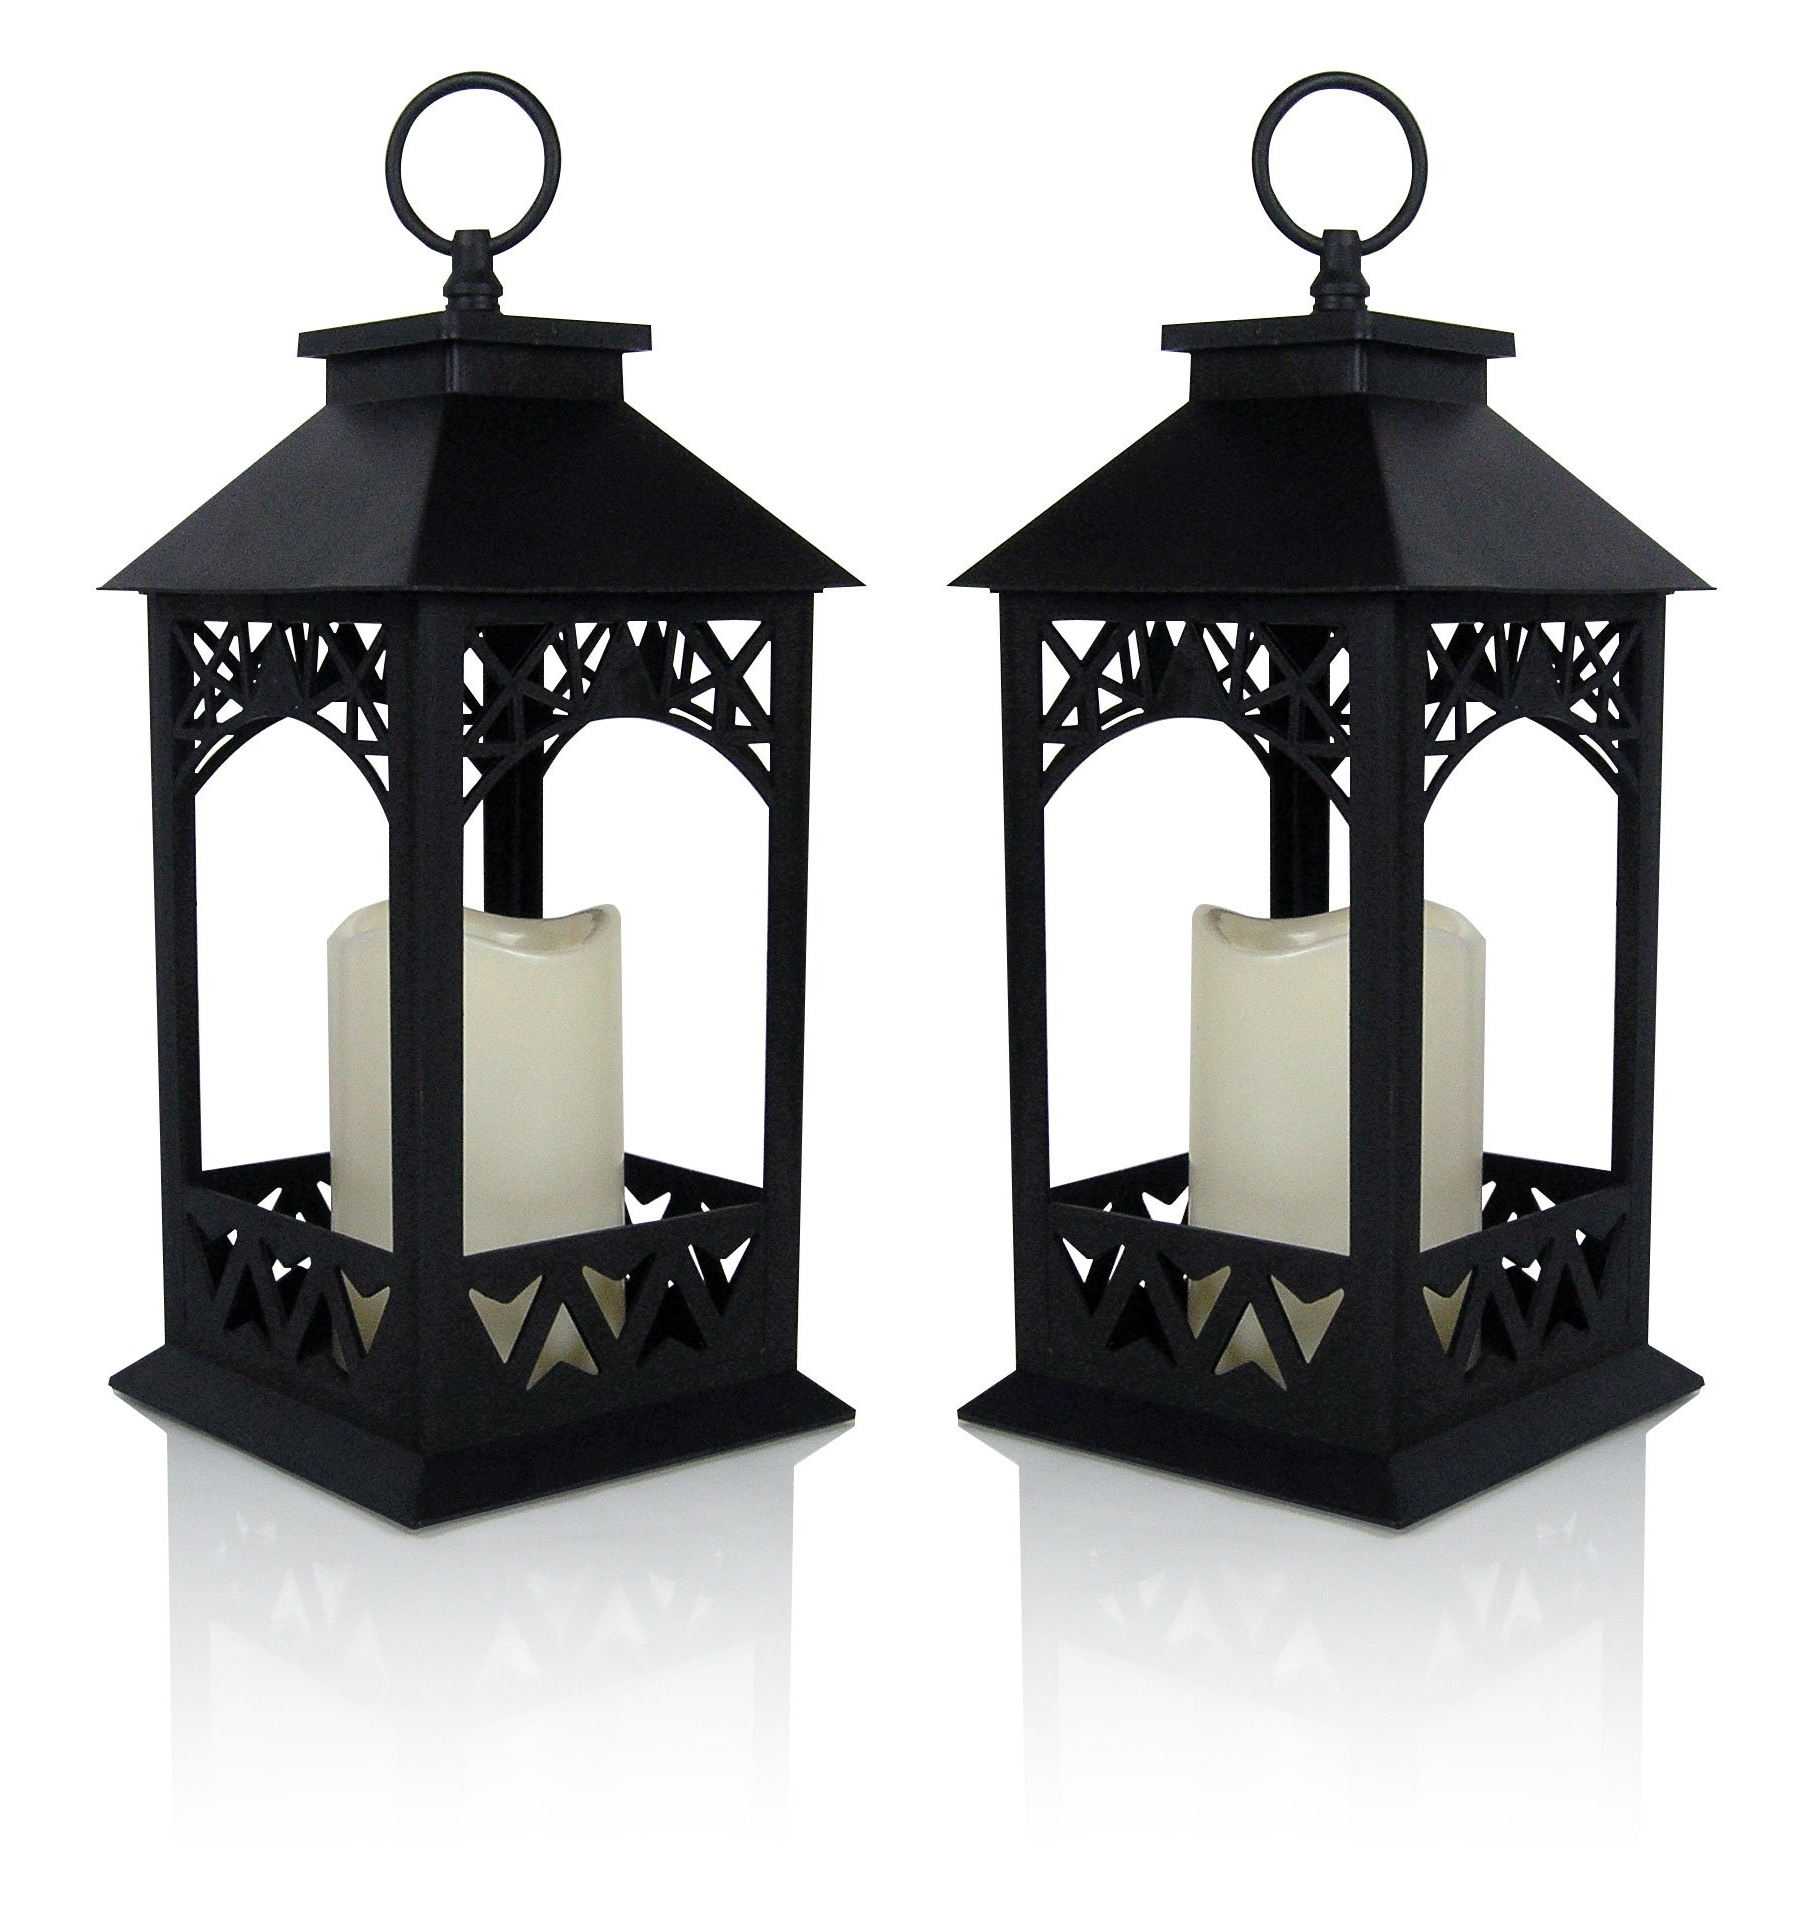 Best And Newest Cheap Outdoor Lanterns Within Cheap Outdoor Lanterns Candle, Find Outdoor Lanterns Candle Deals On (Gallery 4 of 20)